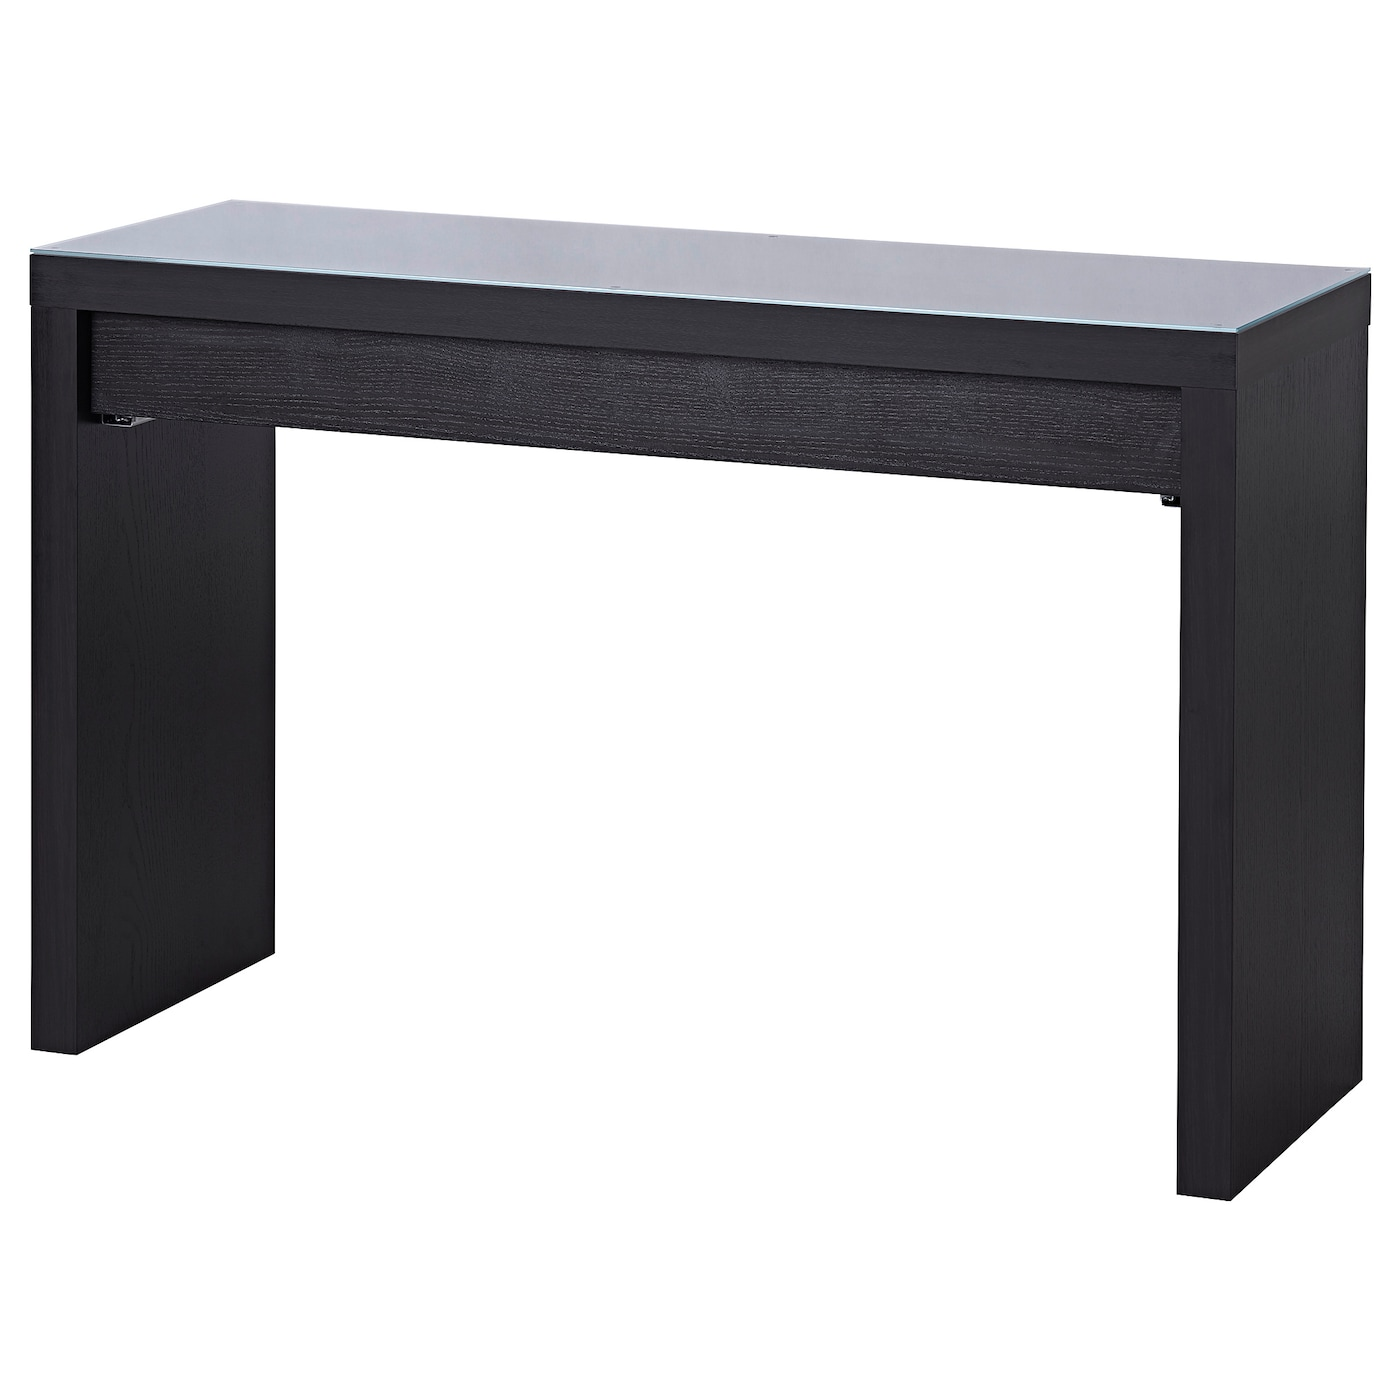 malm dressing table black brown 120 x 41 cm ikea. Black Bedroom Furniture Sets. Home Design Ideas